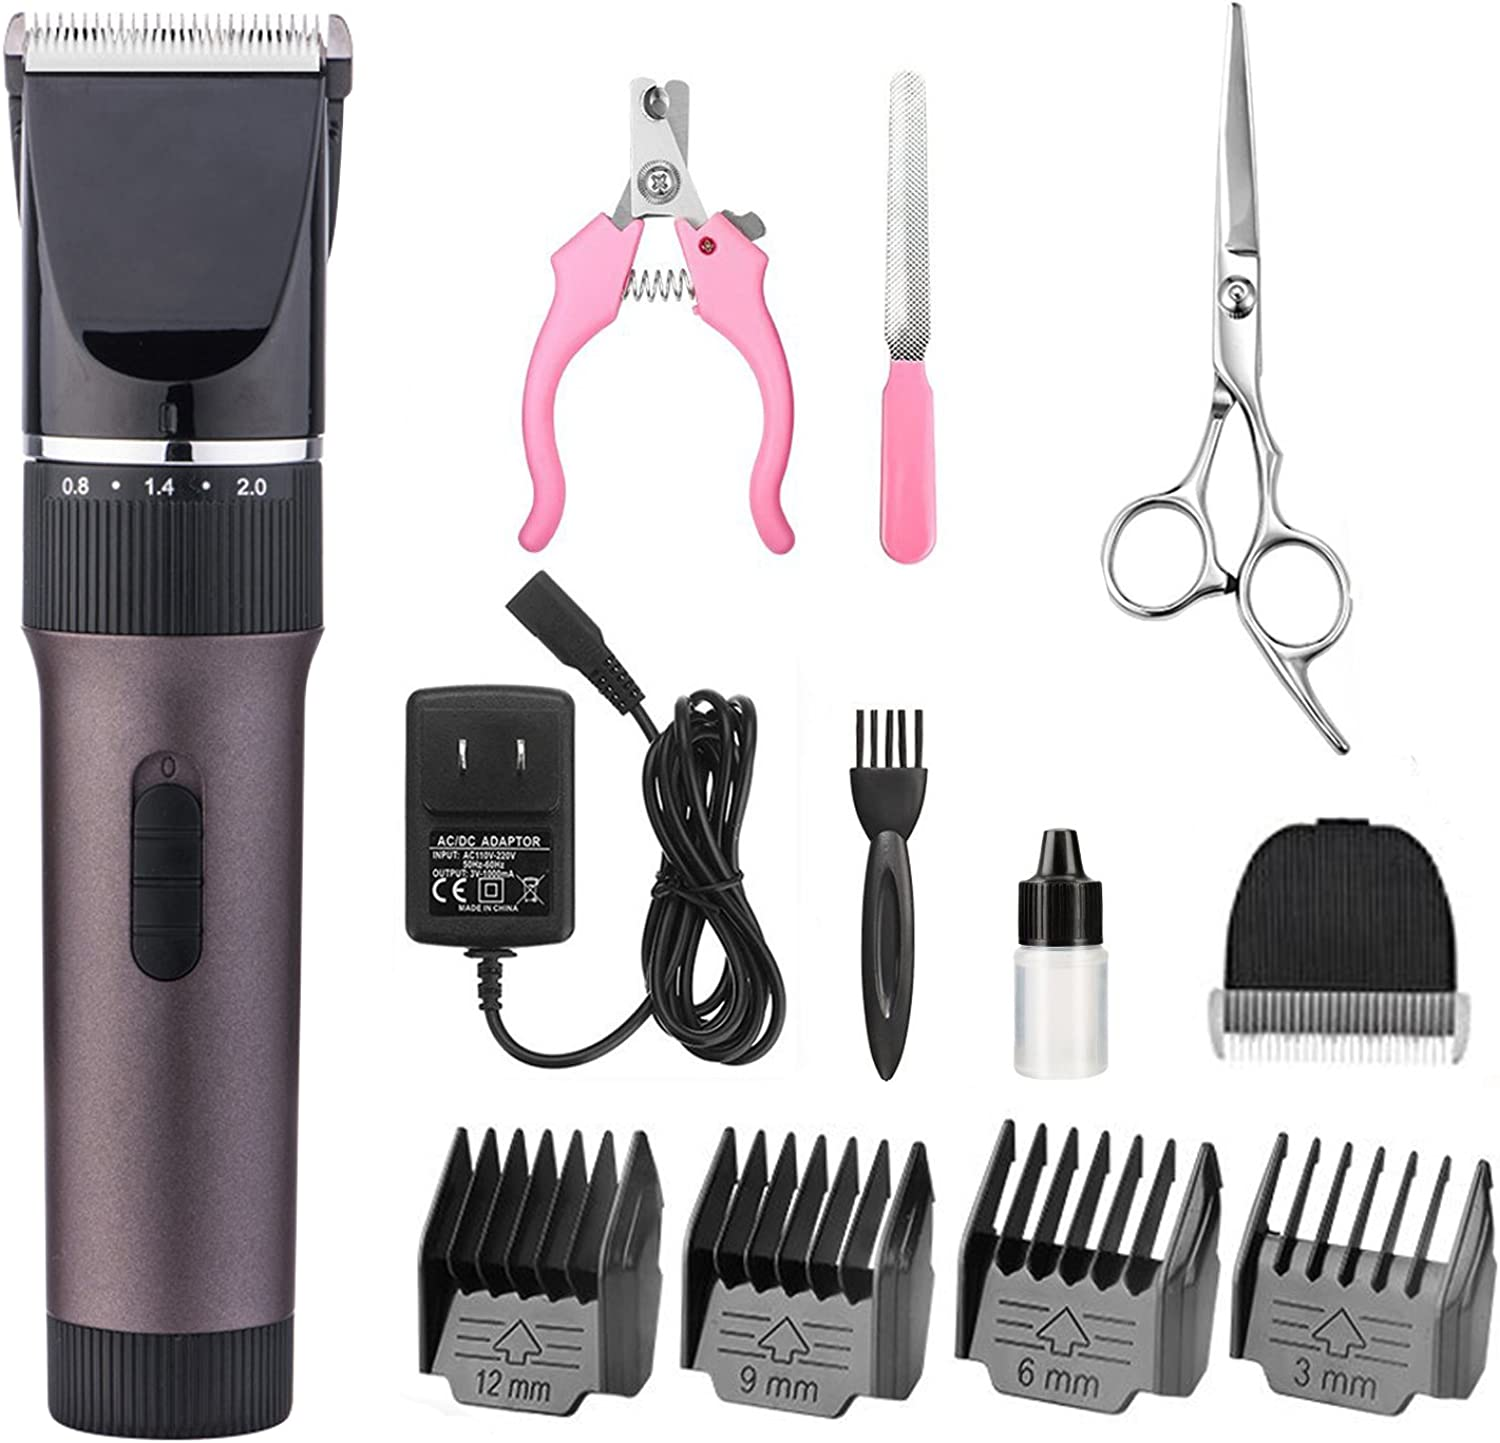 ZRYun Dog Grooming Clipper - Cordless Qiuet Pet Grooming Kit Rechargeable Pet Hair Clipper with 4 Comb Guide(3-6-9-12mm) Adjustable Blade (0.8-2.0mm) Scissors Nail Kits